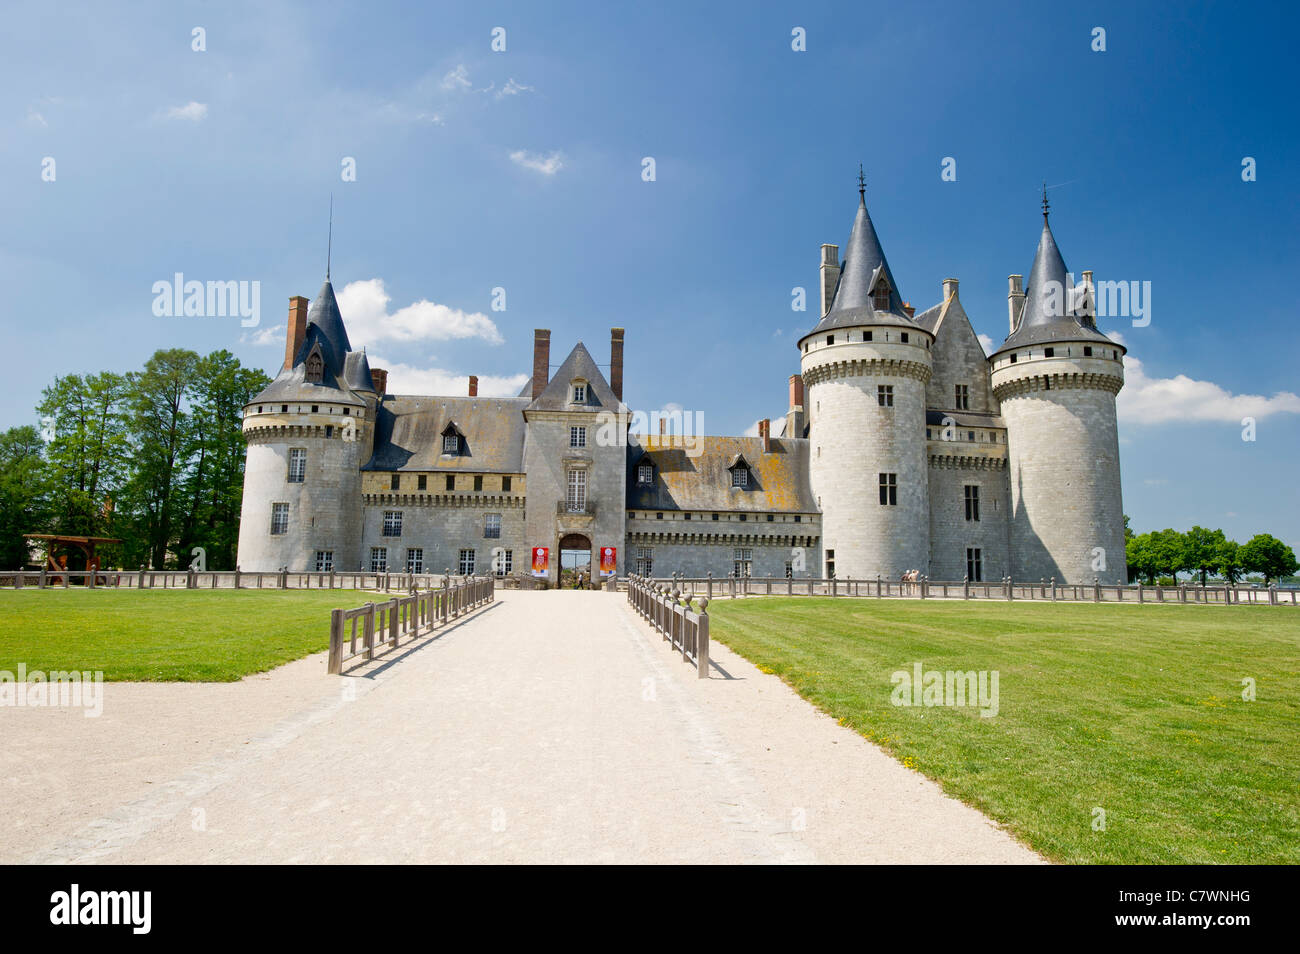 Chateau of Sully-sur-Loire, finest castle in Loire Valley. - Stock Image